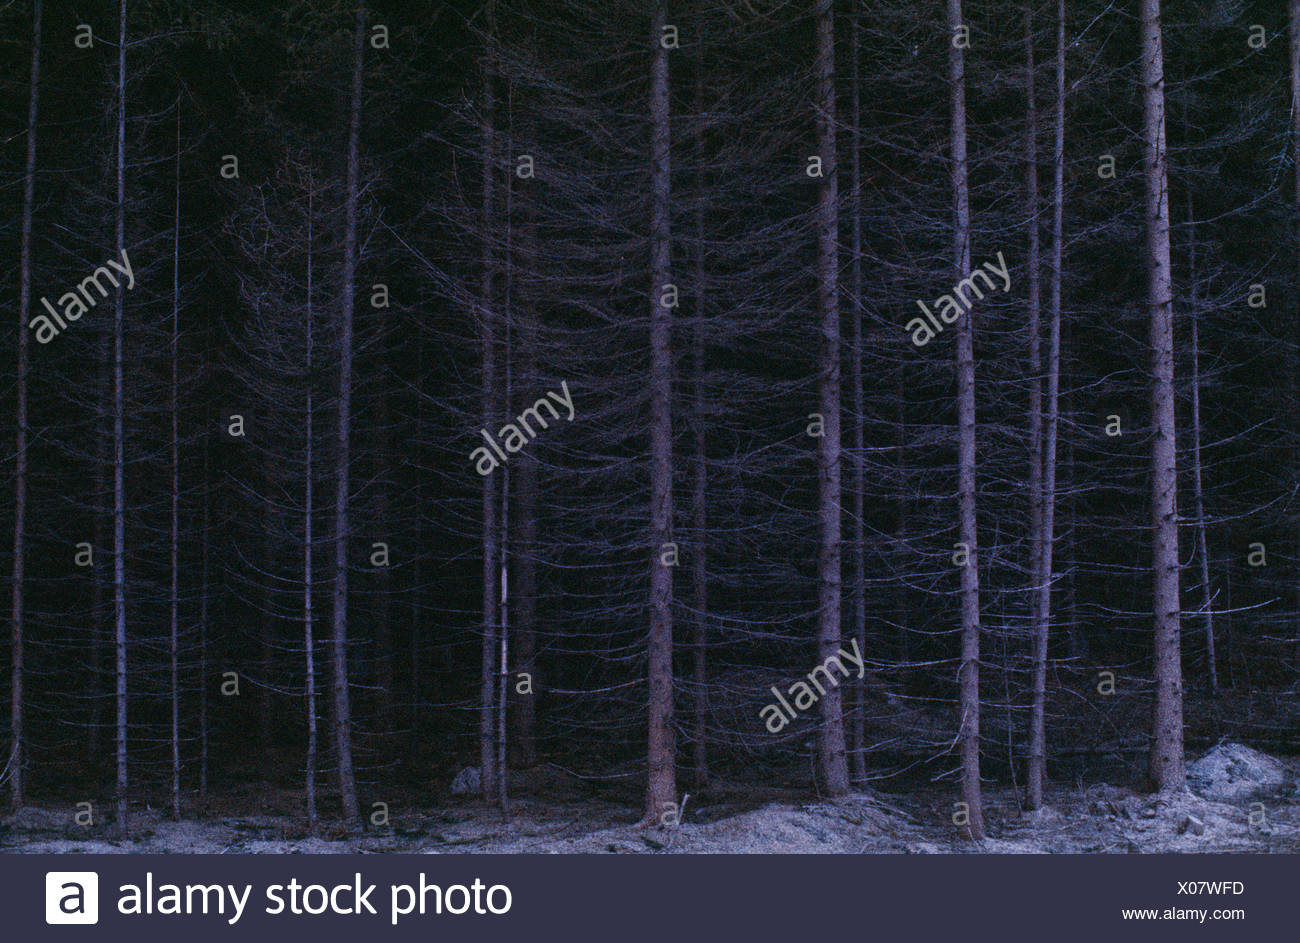 View of coniferous forest at night - Stock Image